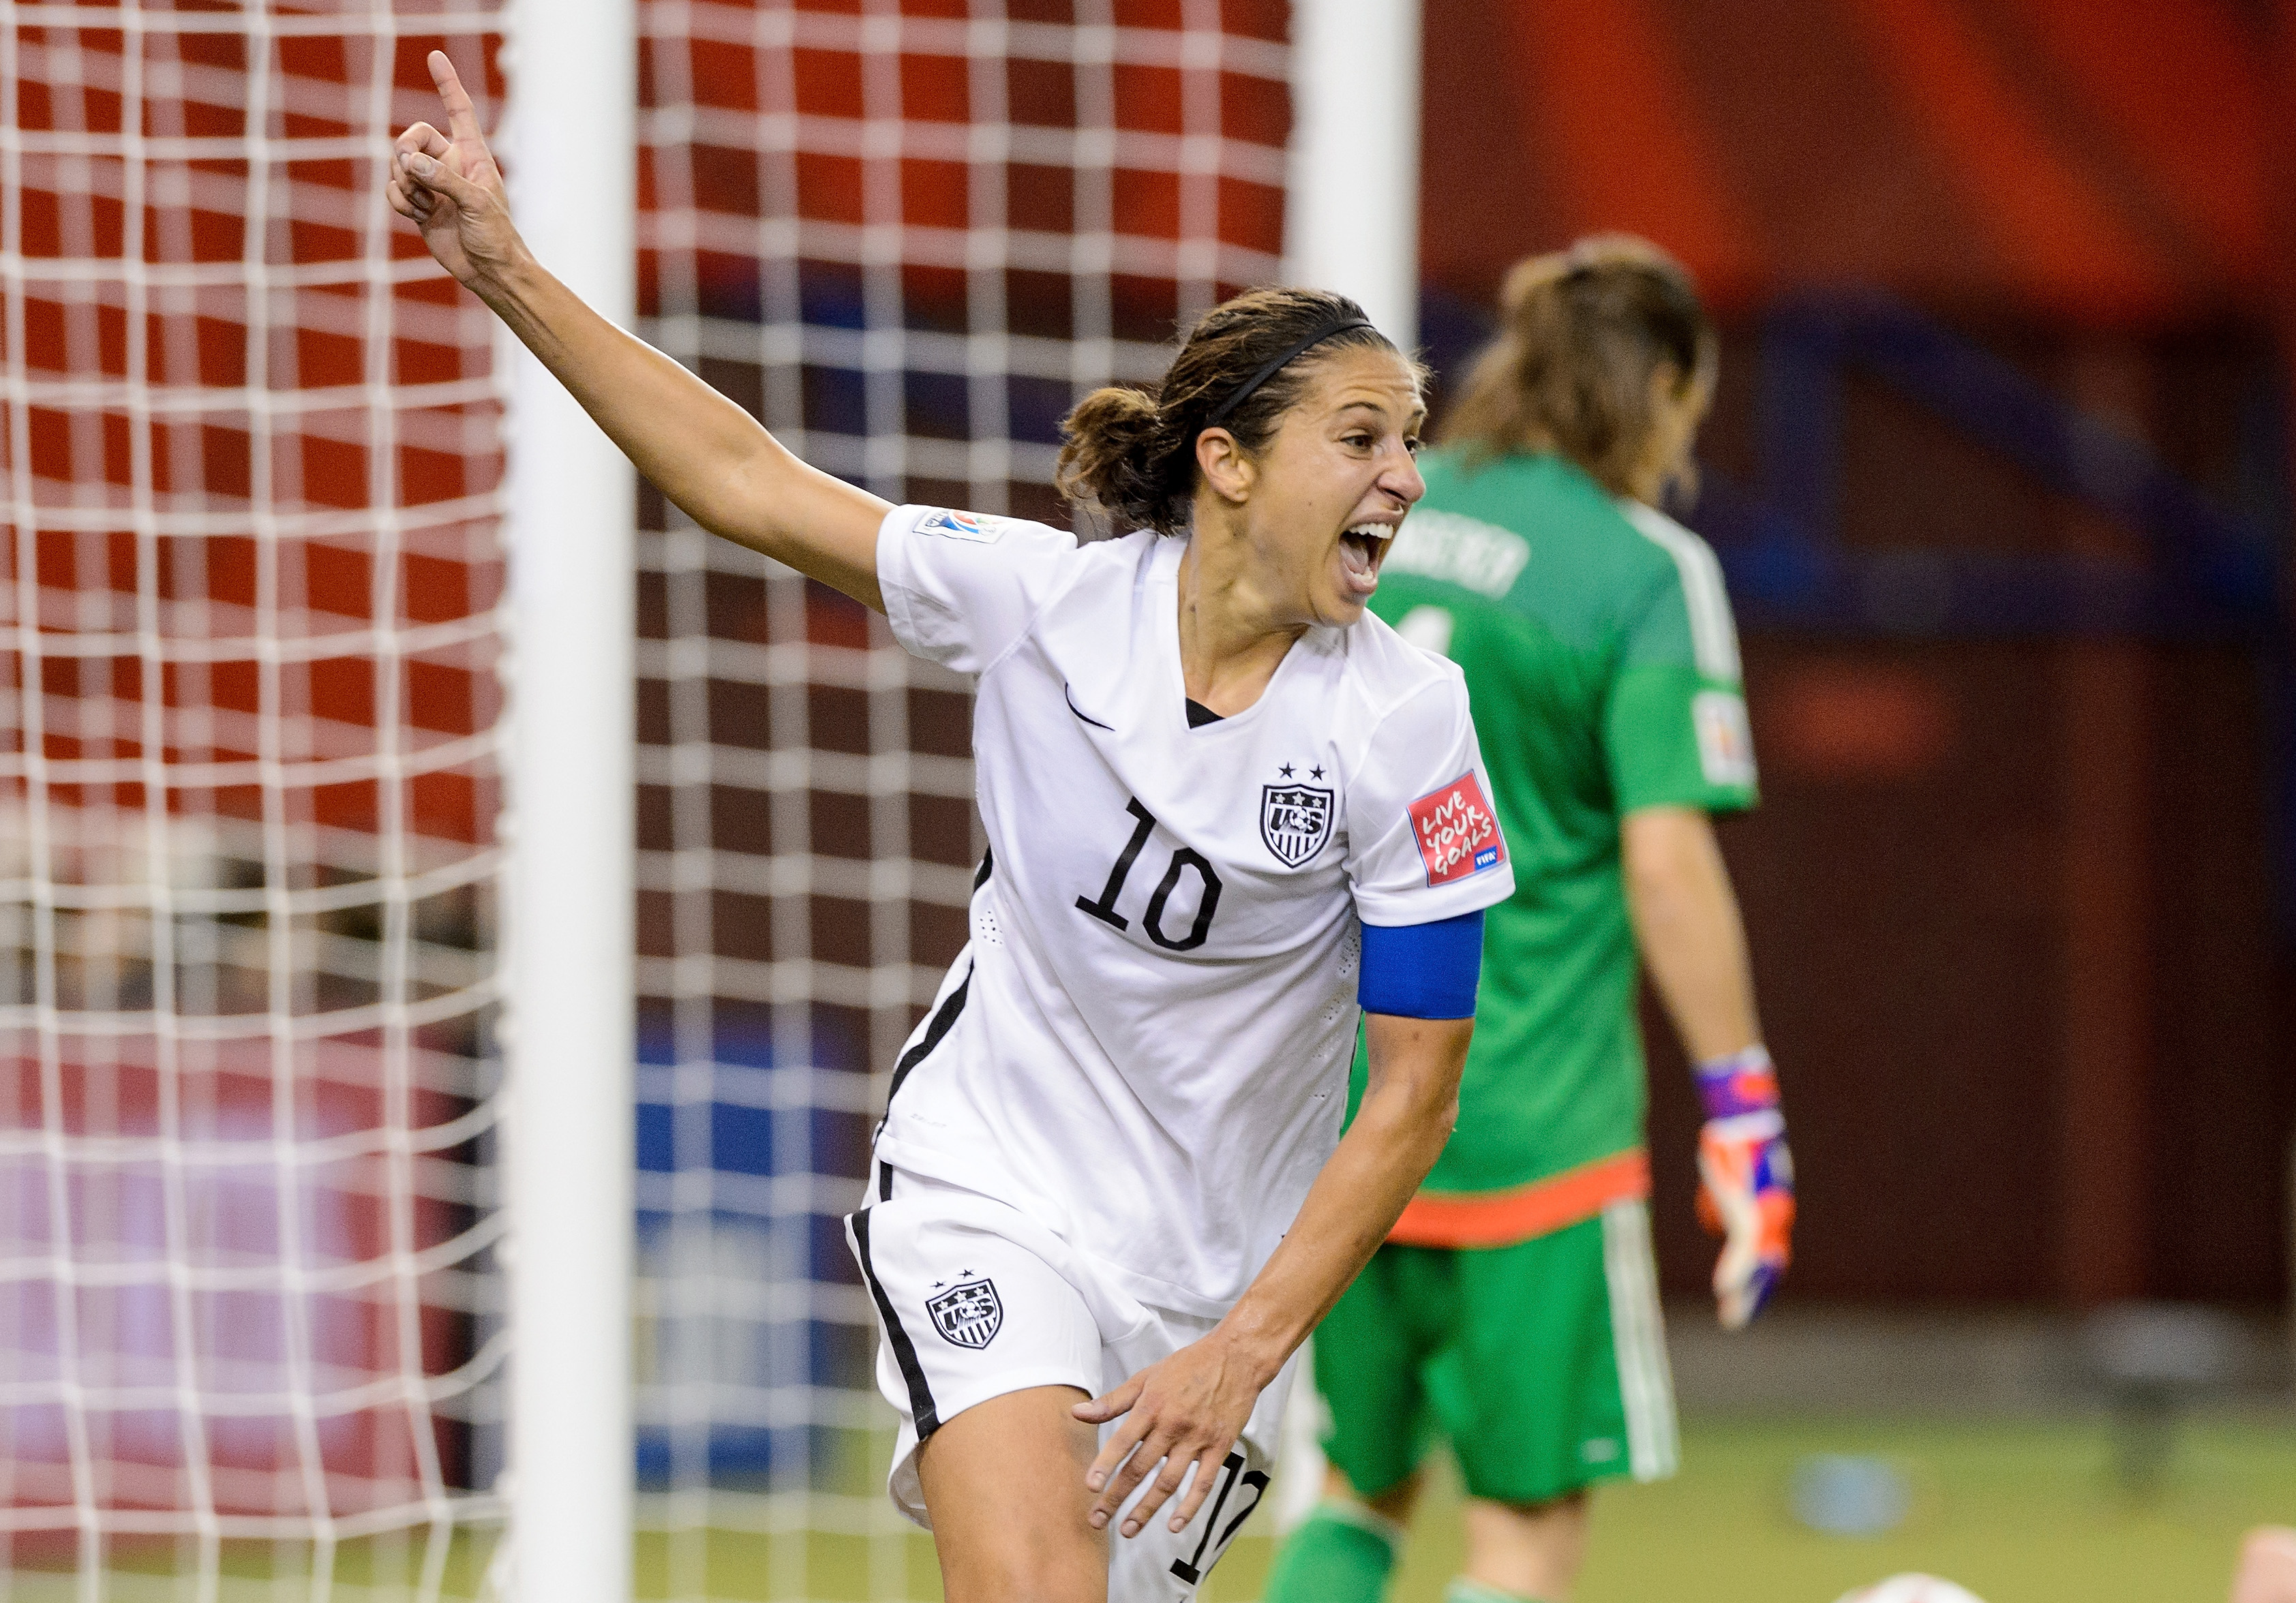 Carli Lloyd celebrates setting up Kelly O'Hara's goal in the FIFA Women's World Cup 2015 Semi-Final Match at Olympic Stadium on June 30, 2015 in Montreal, Canada.